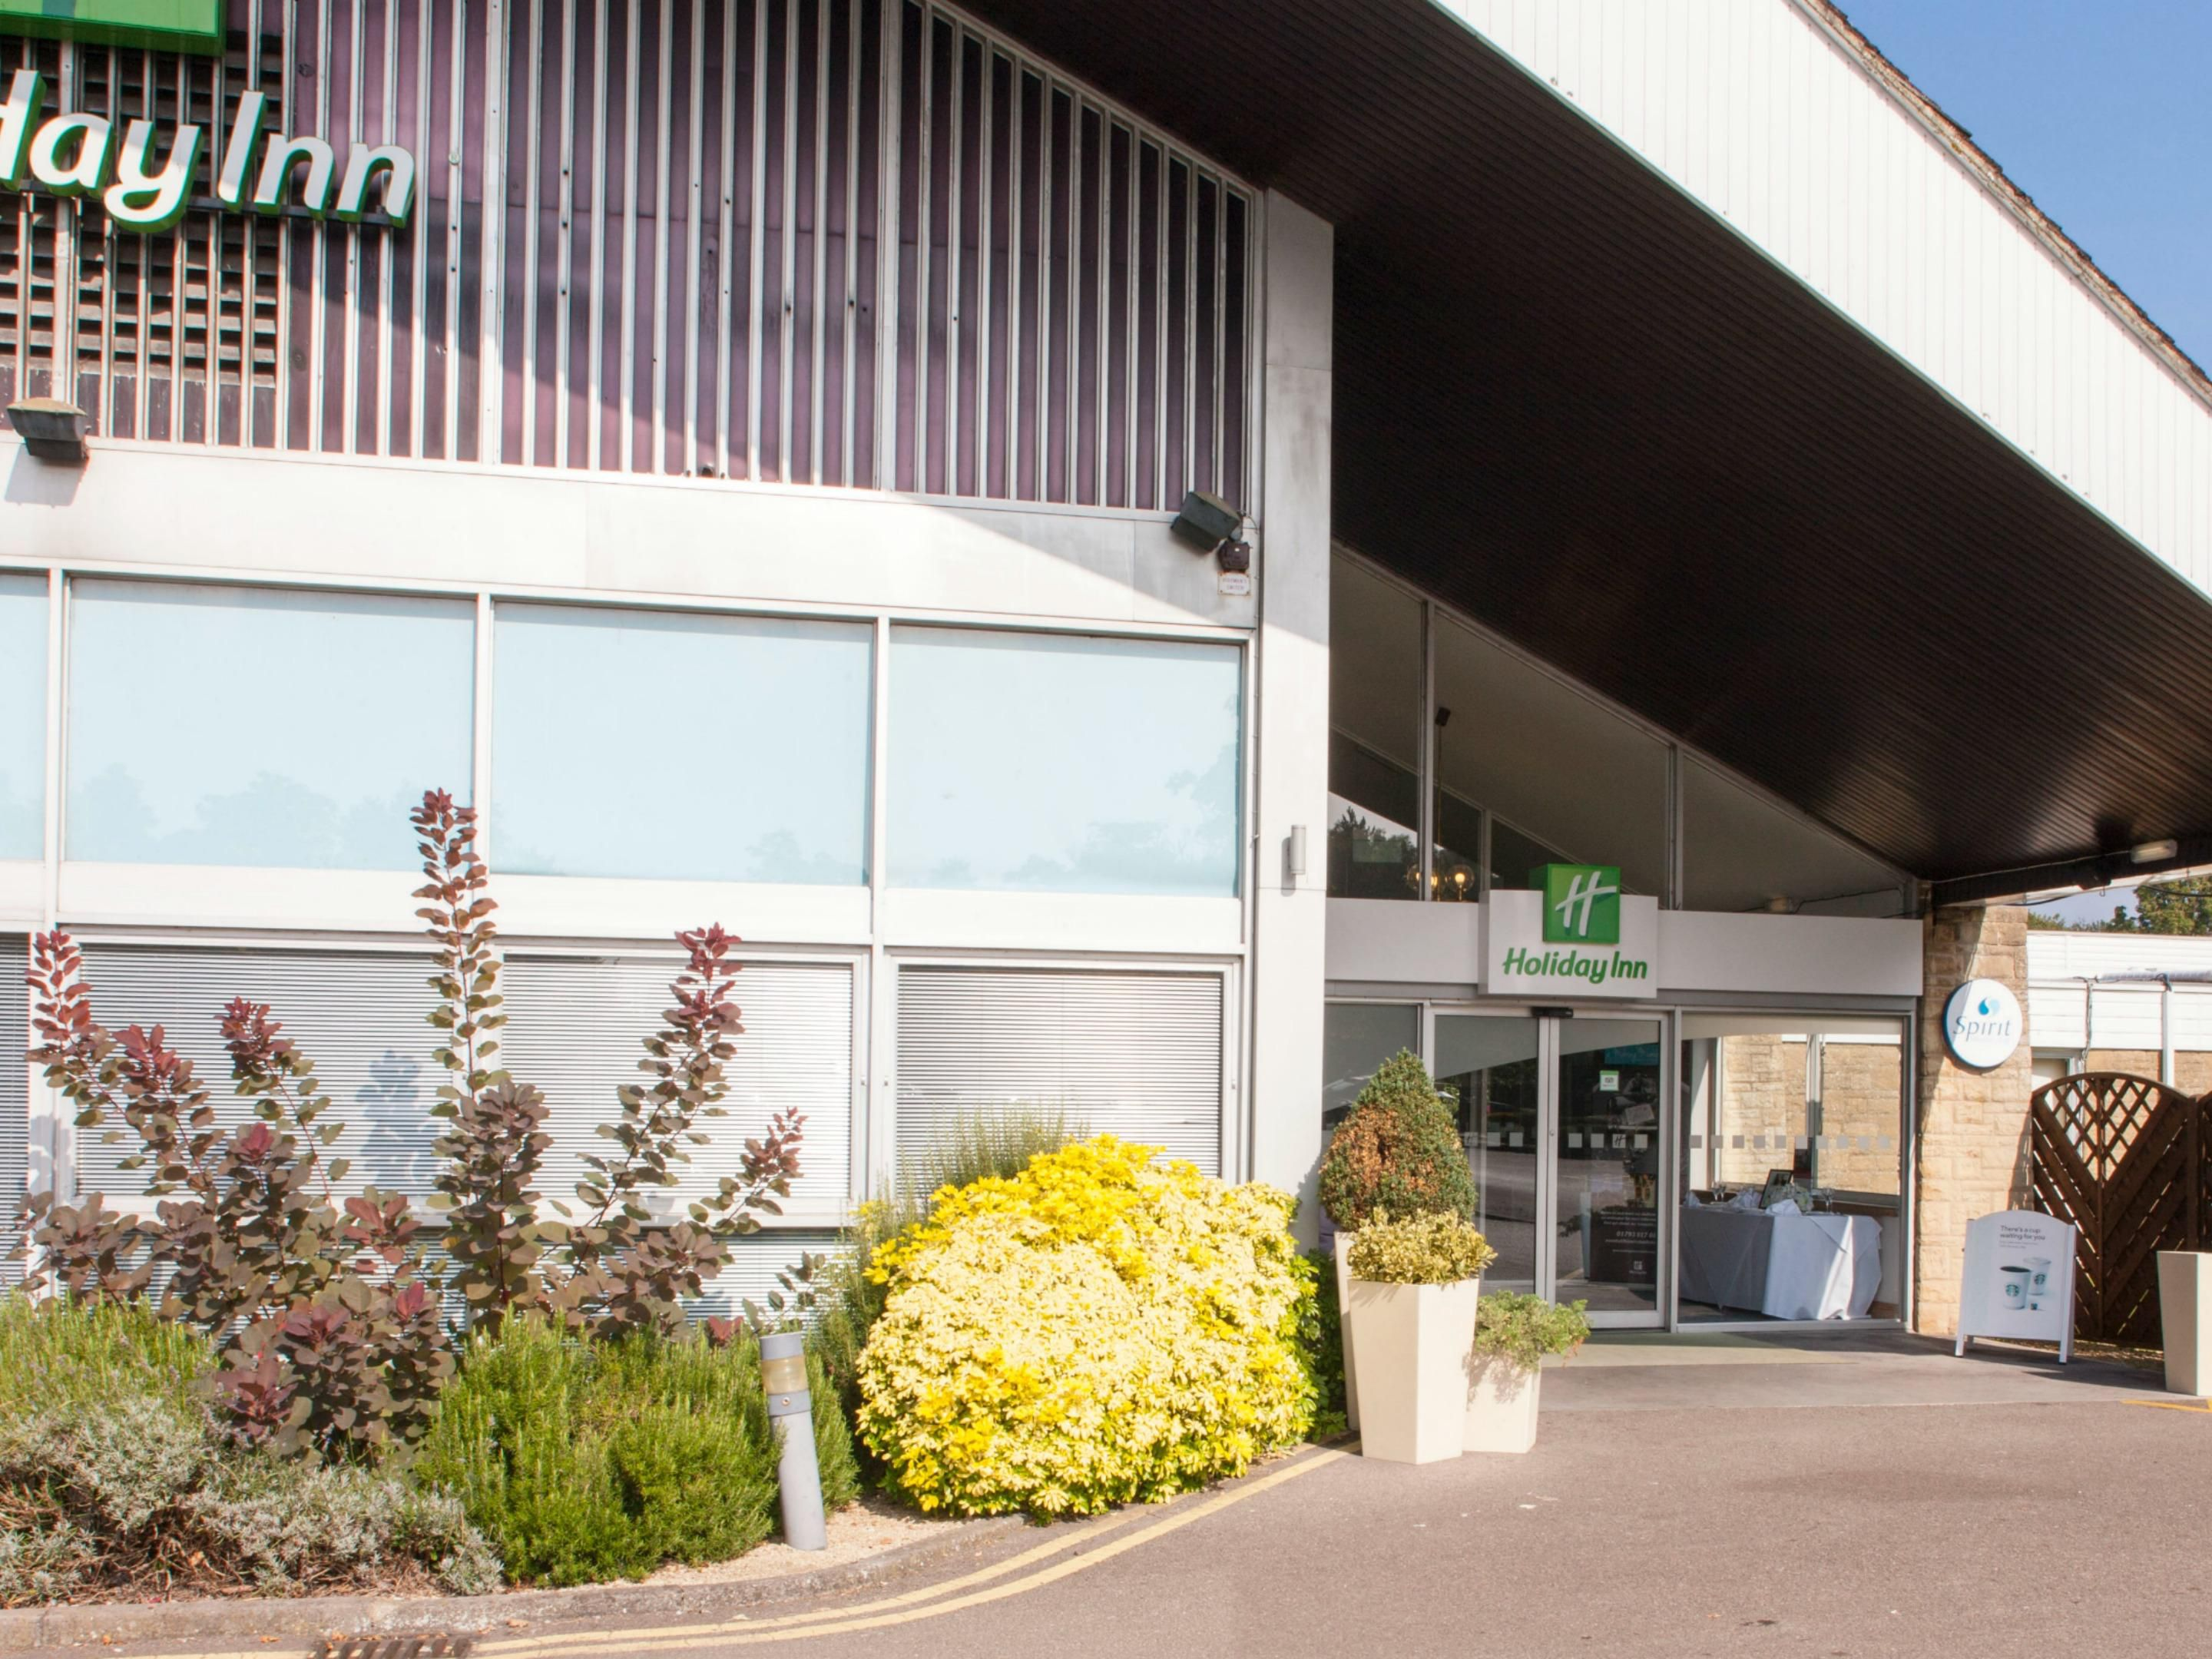 A warm welcome from all the team at Holiday Inn Swindon